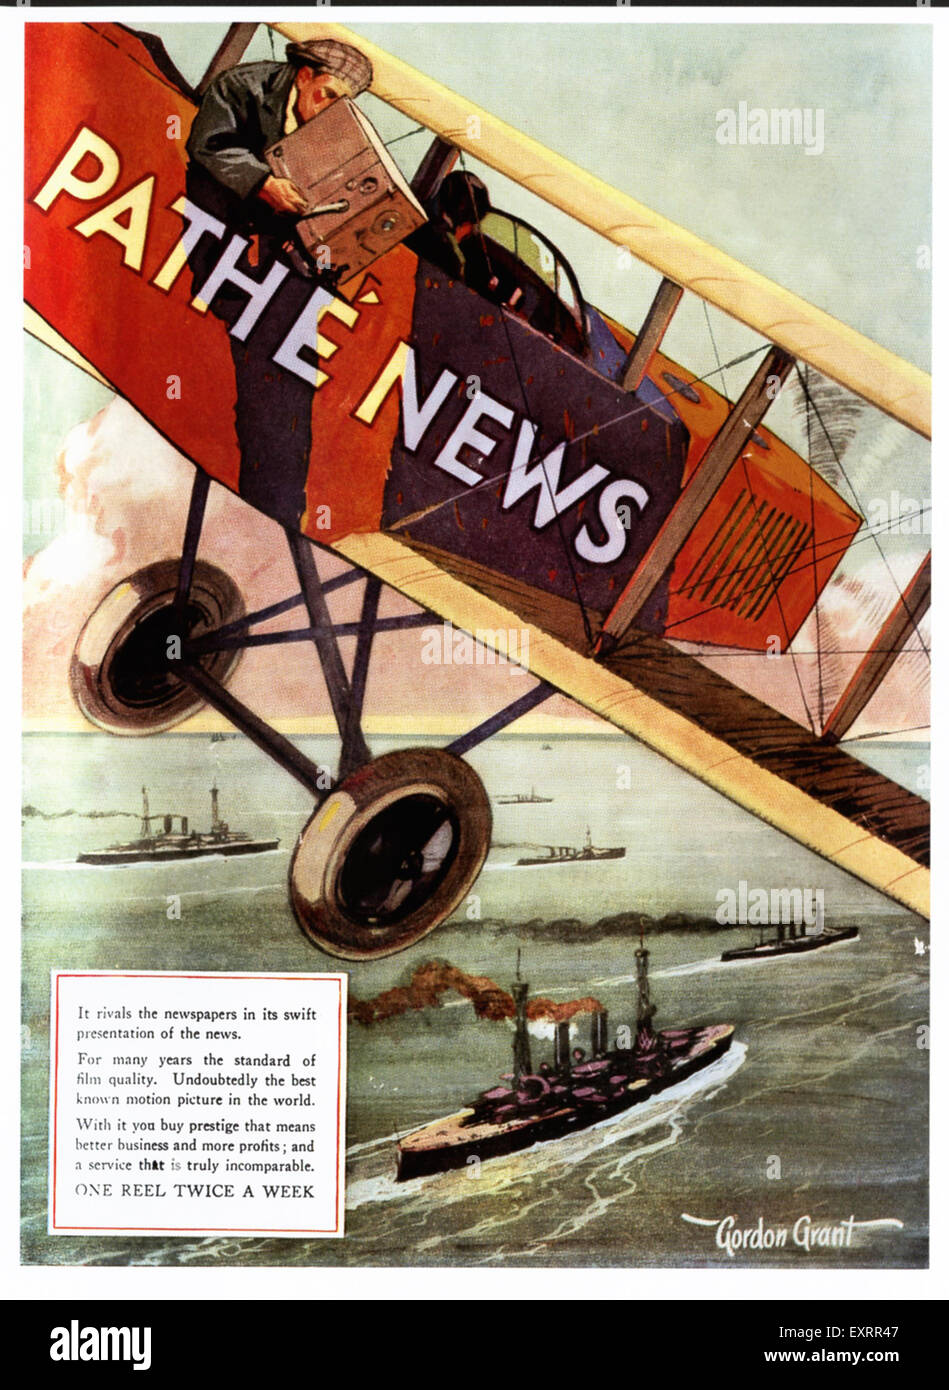 1920s USA Pathe News Magazine Advert - Stock Image